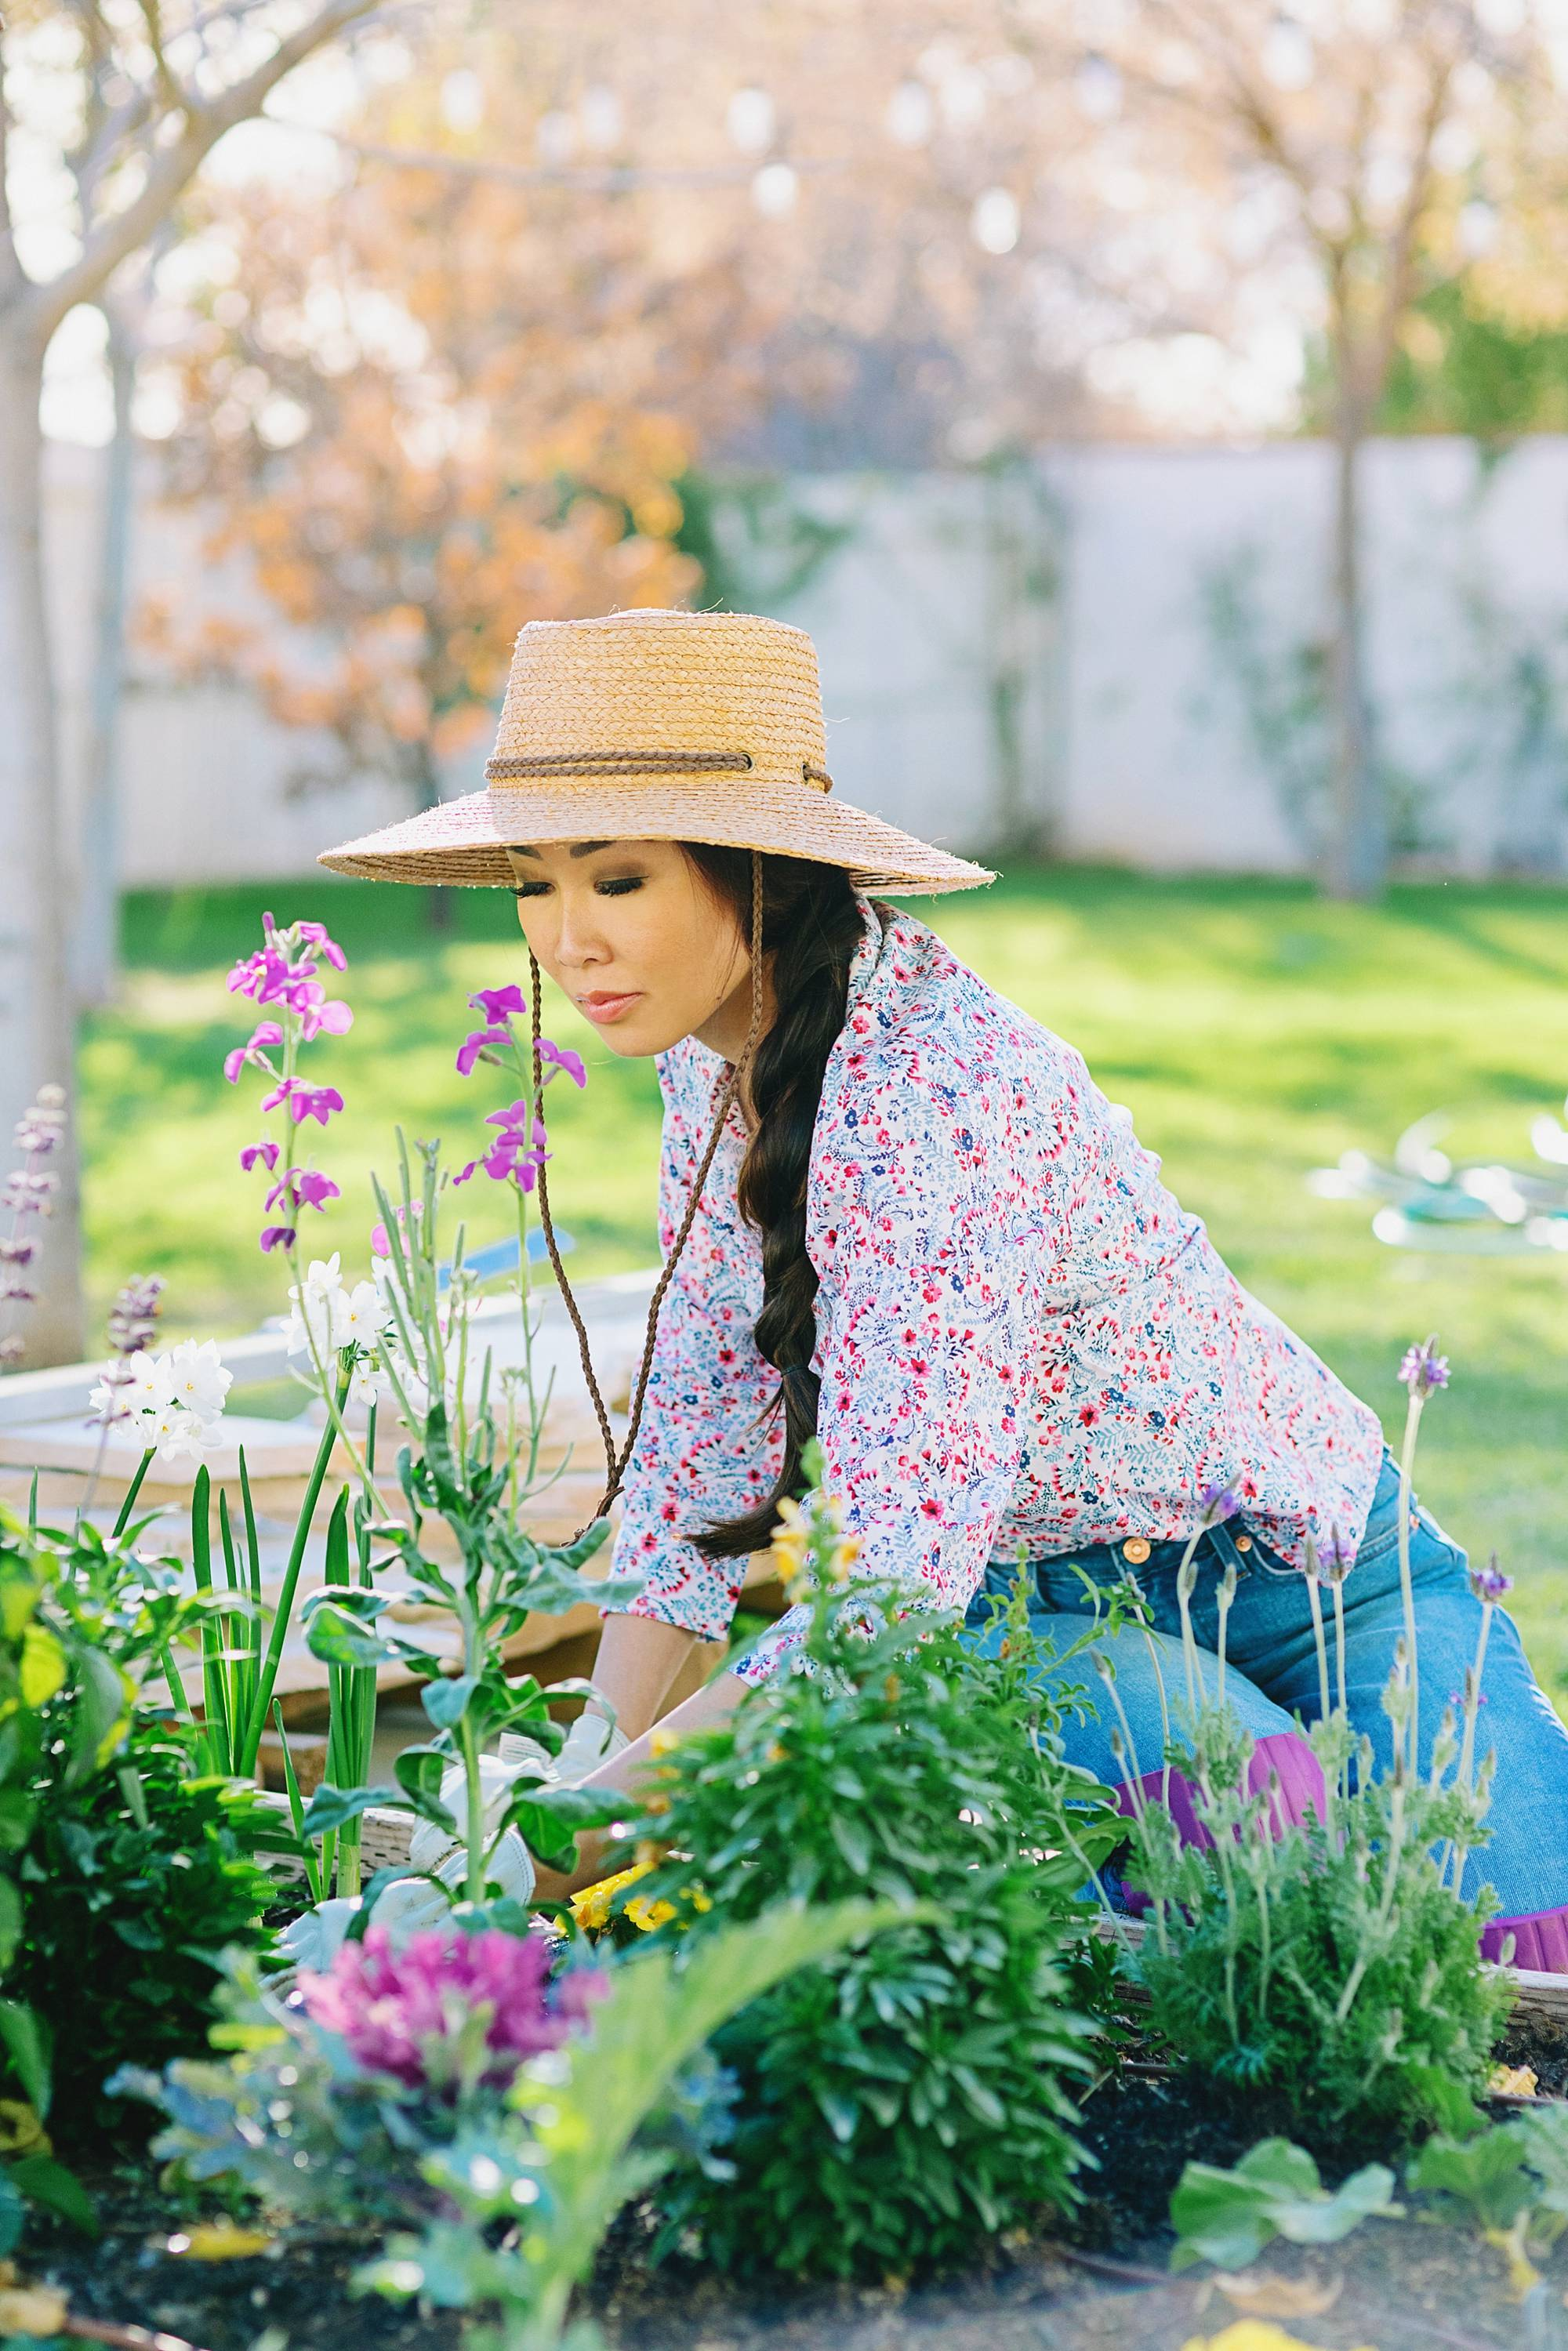 Diana Elizabeth in her backyard garden in Phoenix arizona wearing a floral print shirt, raised garden beds